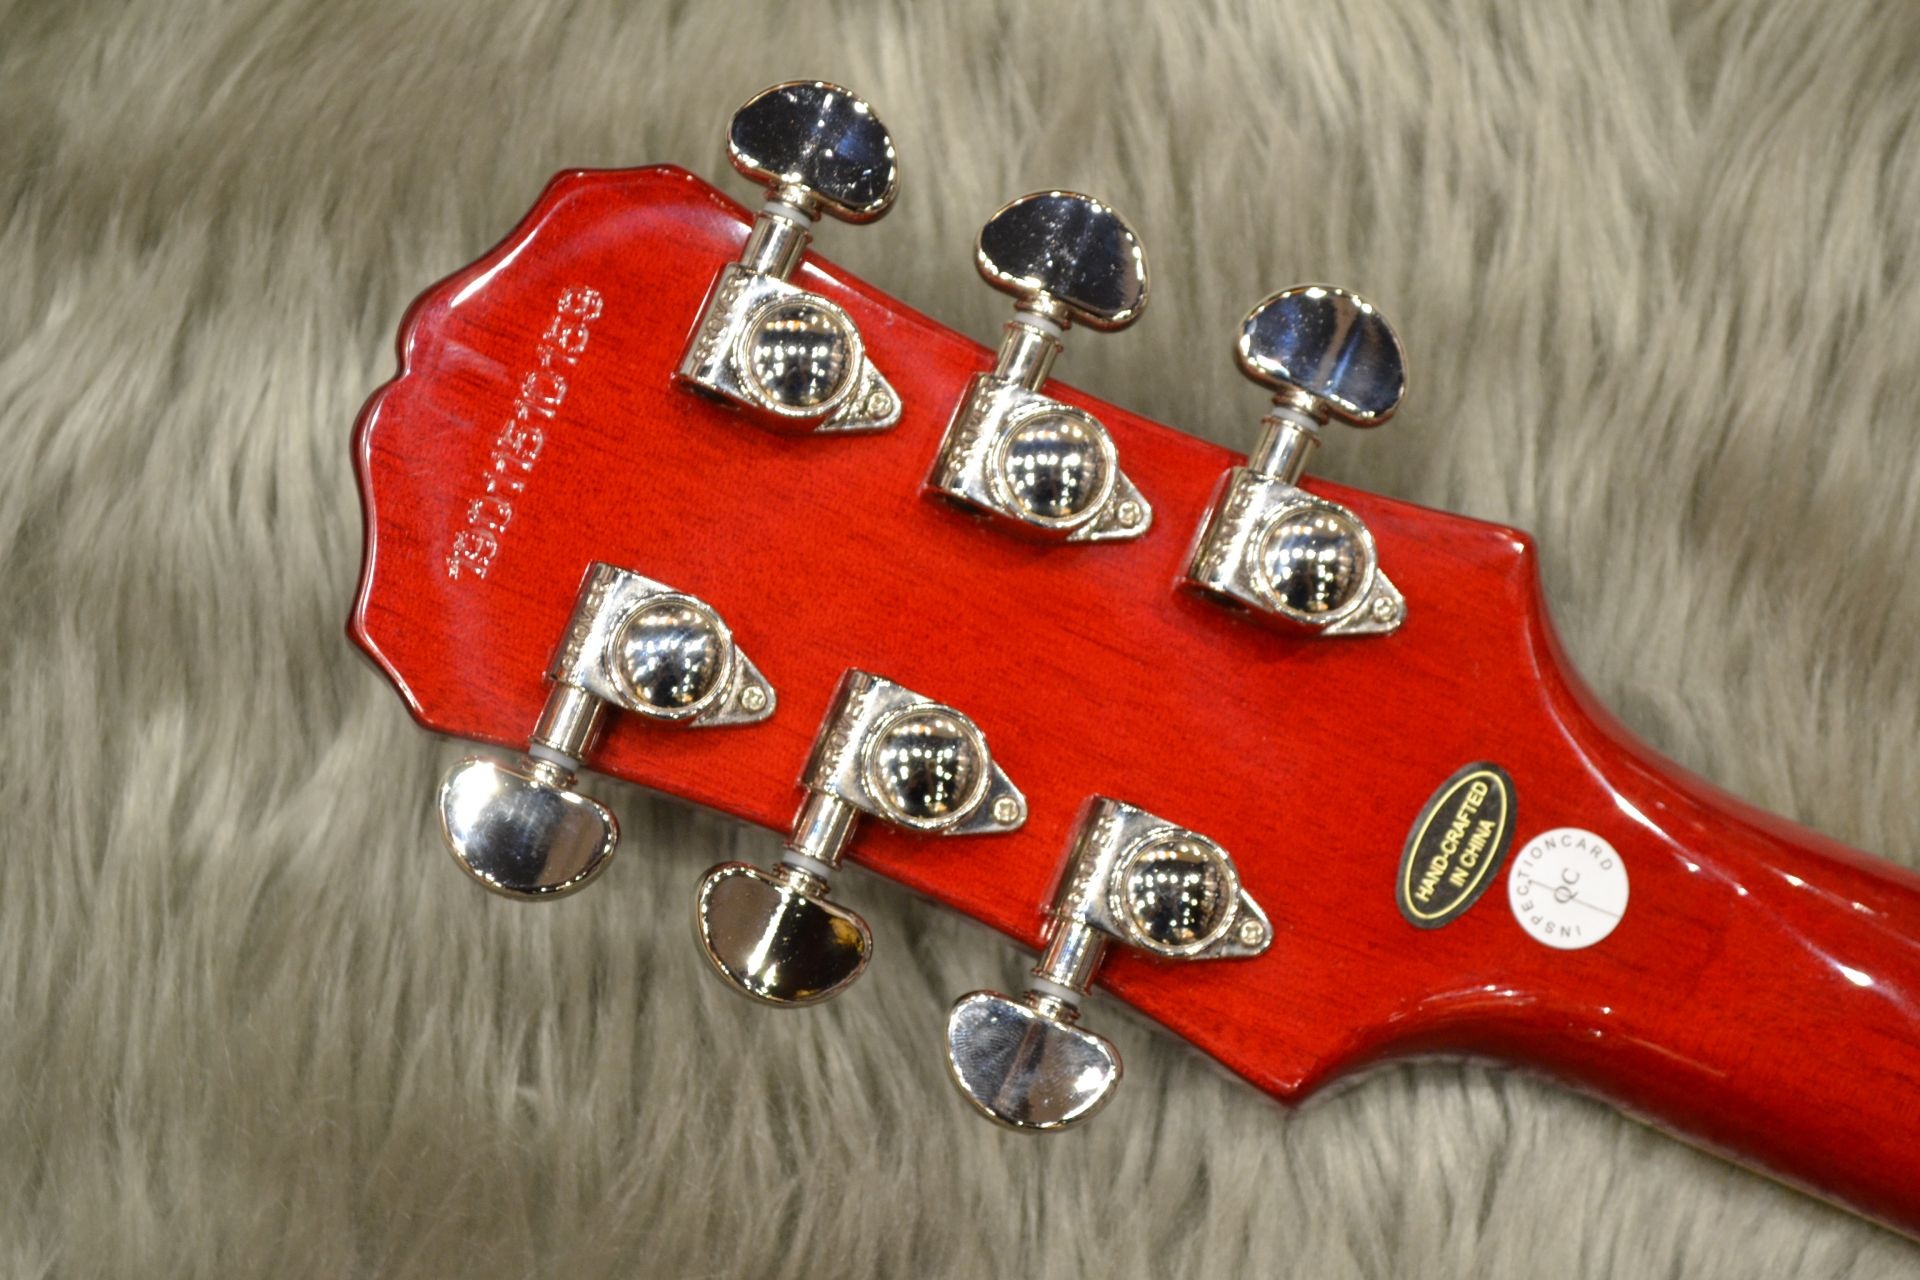 Les Paul STANDARD PLUS-TOP PRO (Probuckers&Coil-Tap)のヘッド裏-アップ画像